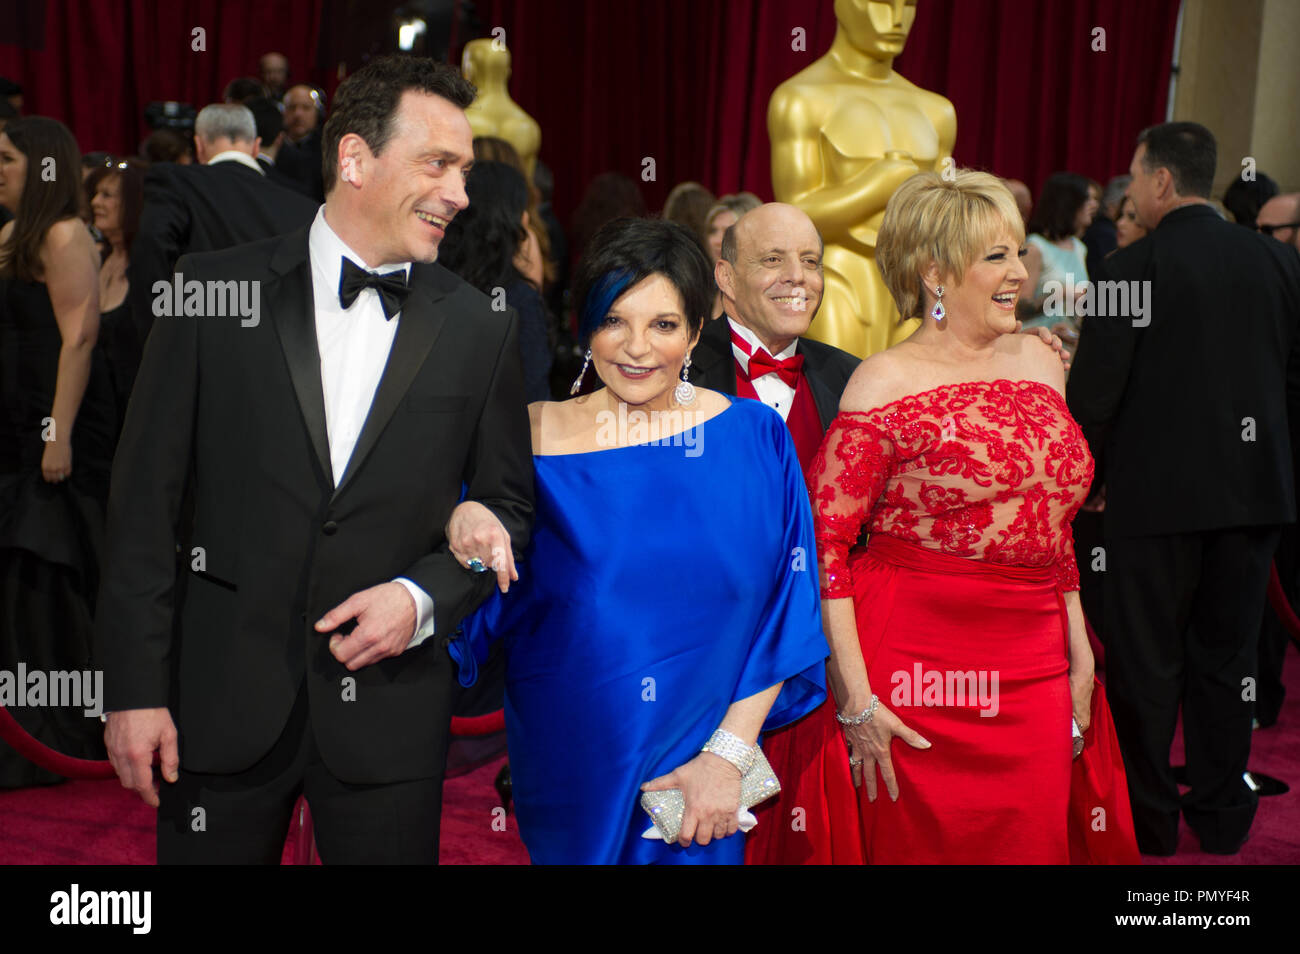 Liza Minnelli and guests arrive for the live ABC Telecast of The 86th Oscars® at the Dolby® Theatre on March 2, 2014 in Hollywood, CA.  File Reference # 32268_119  For Editorial Use Only -  All Rights Reserved - Stock Image